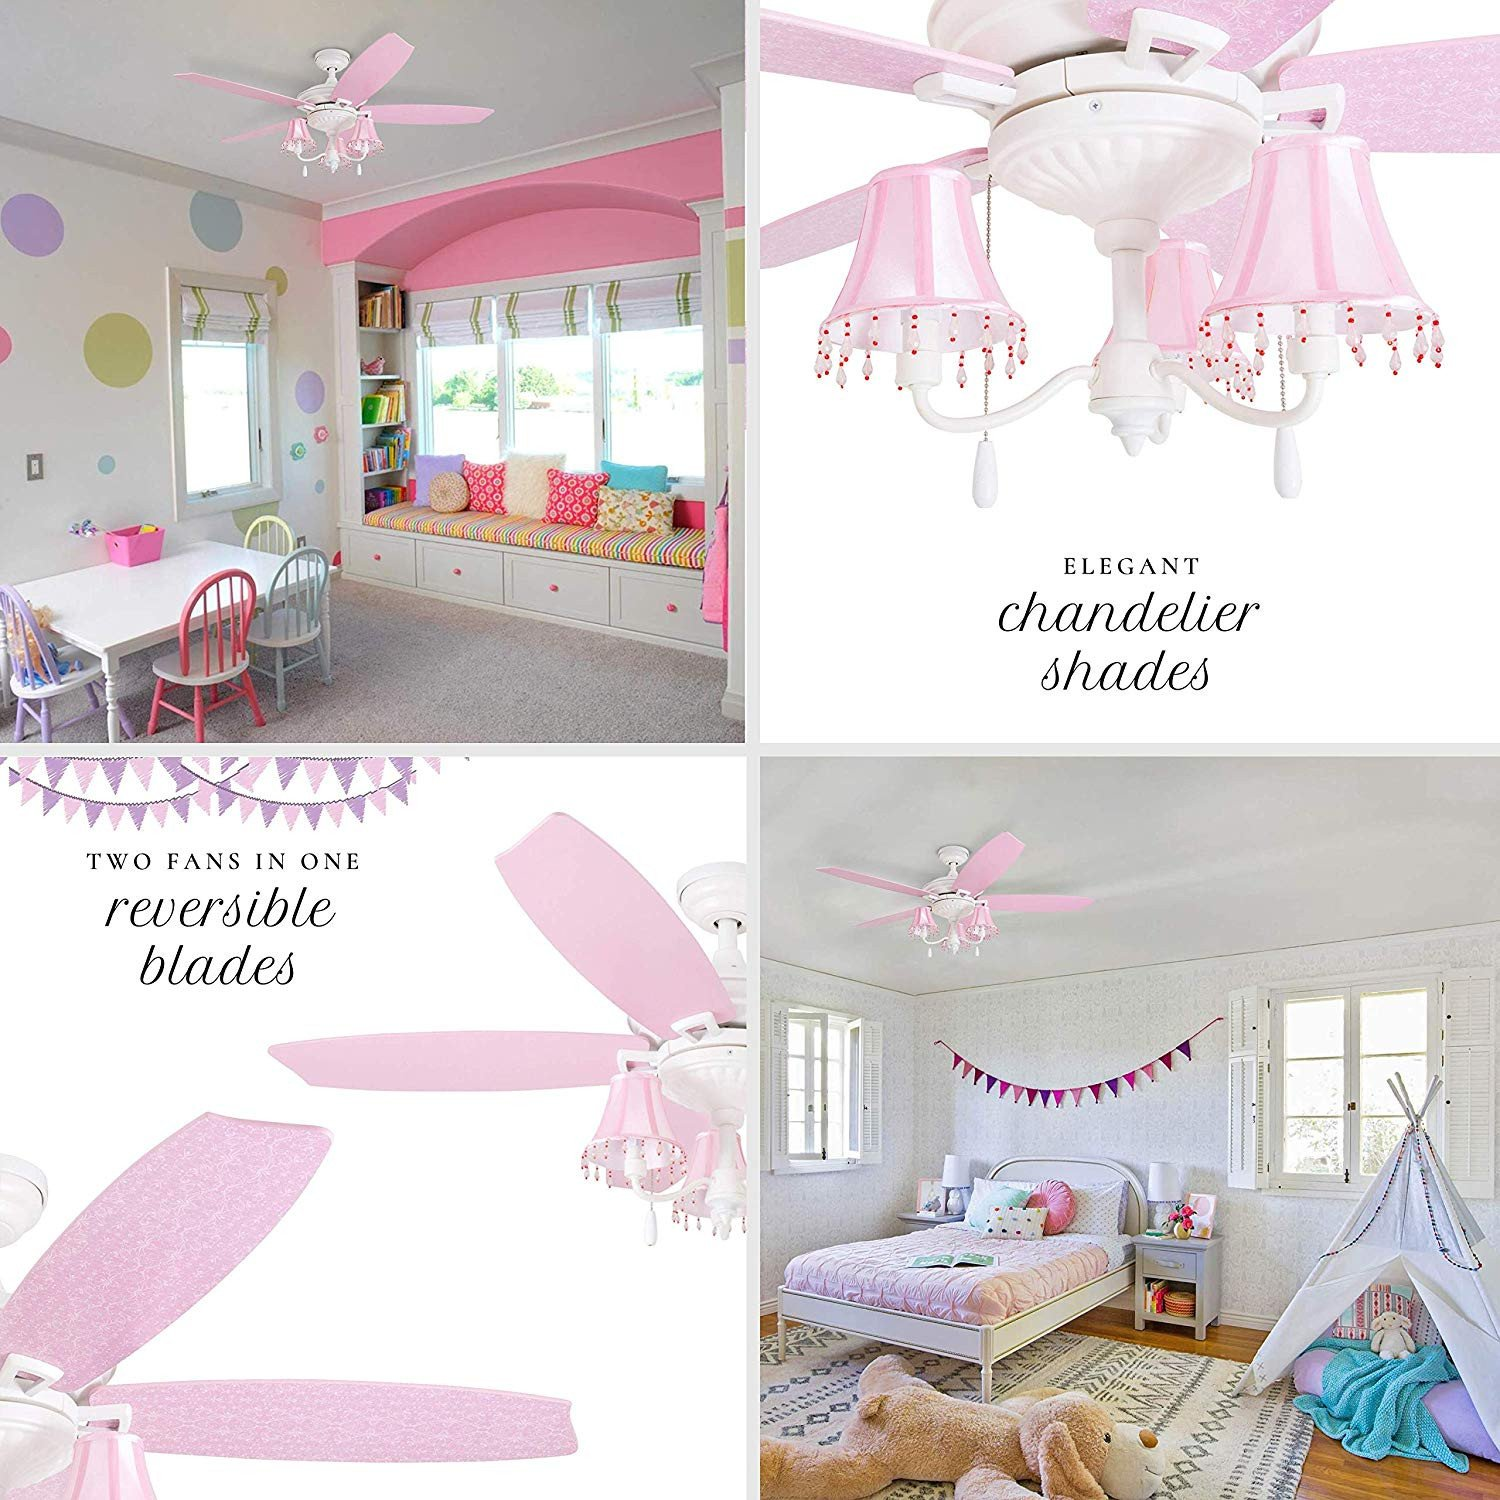 "Ceiling Fans for Girl Bedroom Inspirational Prominence Home Elsa 48"" Pink Ceiling Chandelier Lamp Shades Dusty Rose Blushing Glow Fan Blades Classic White"